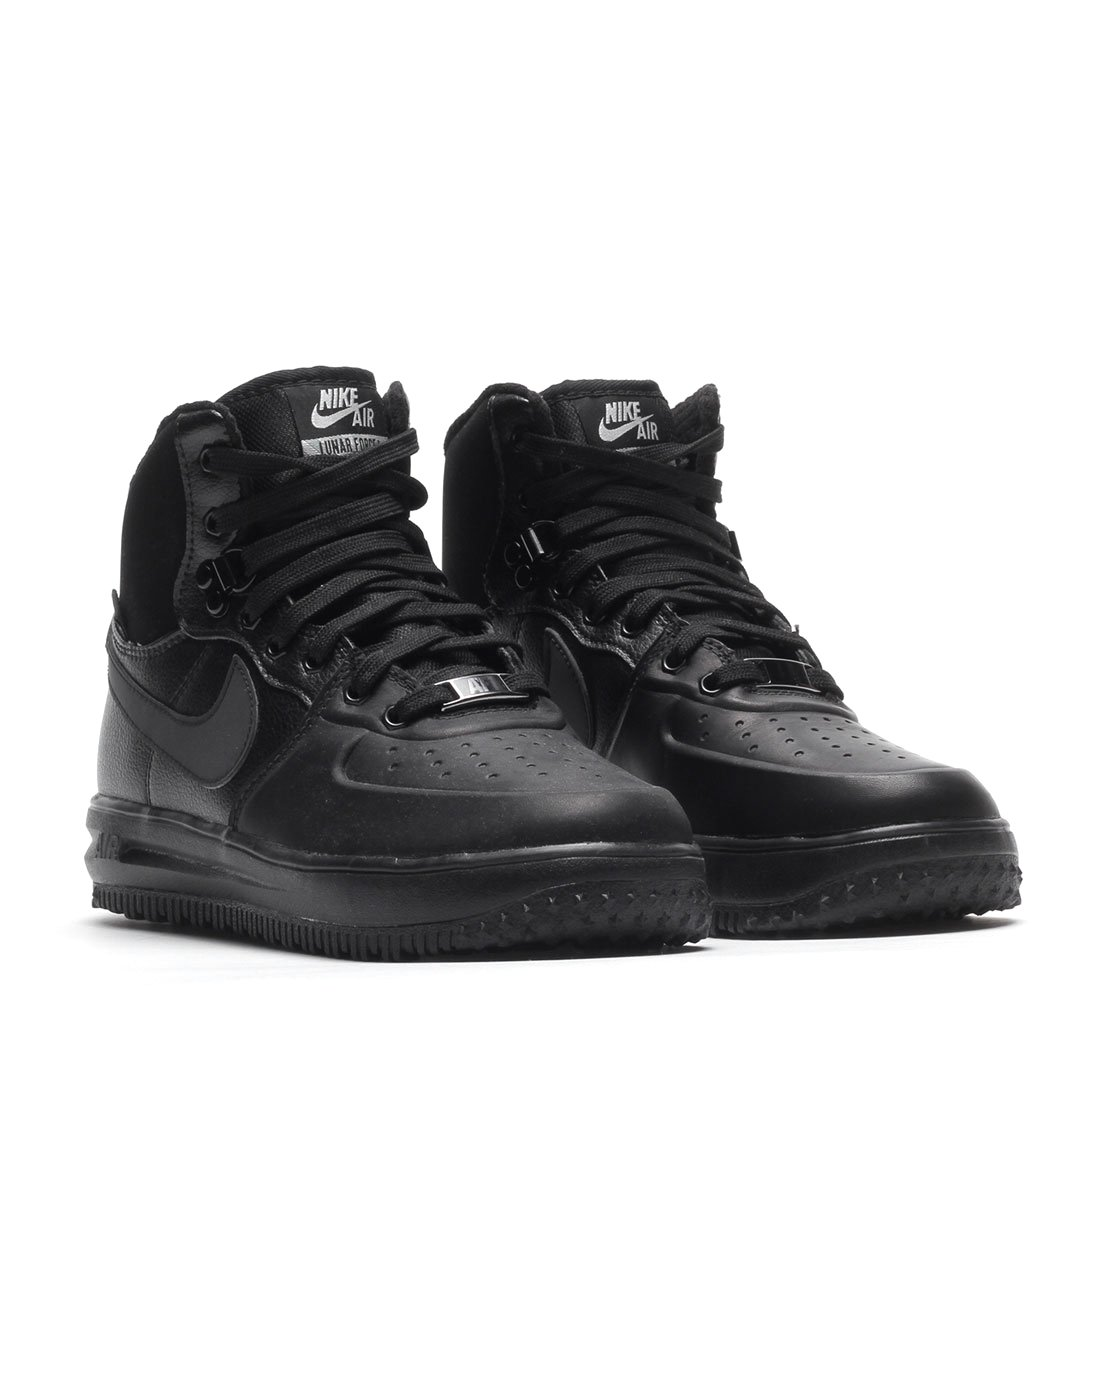 Nike Lunar Force 1 Sneakerboot (GS) Black/Black-Metallic Silver (4.5Y) by Nike (Image #2)